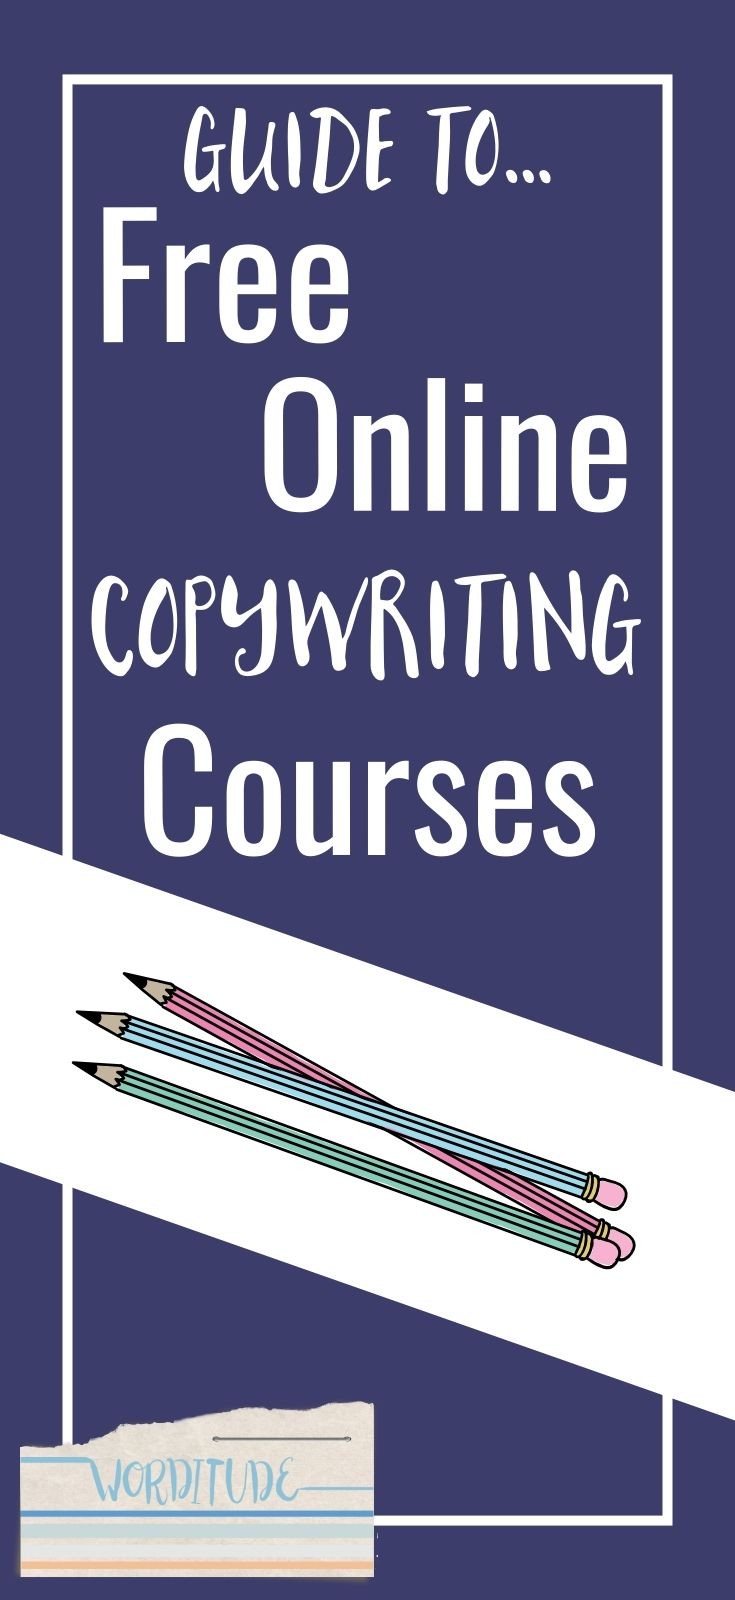 002 Learn how to write more compelling online content Work